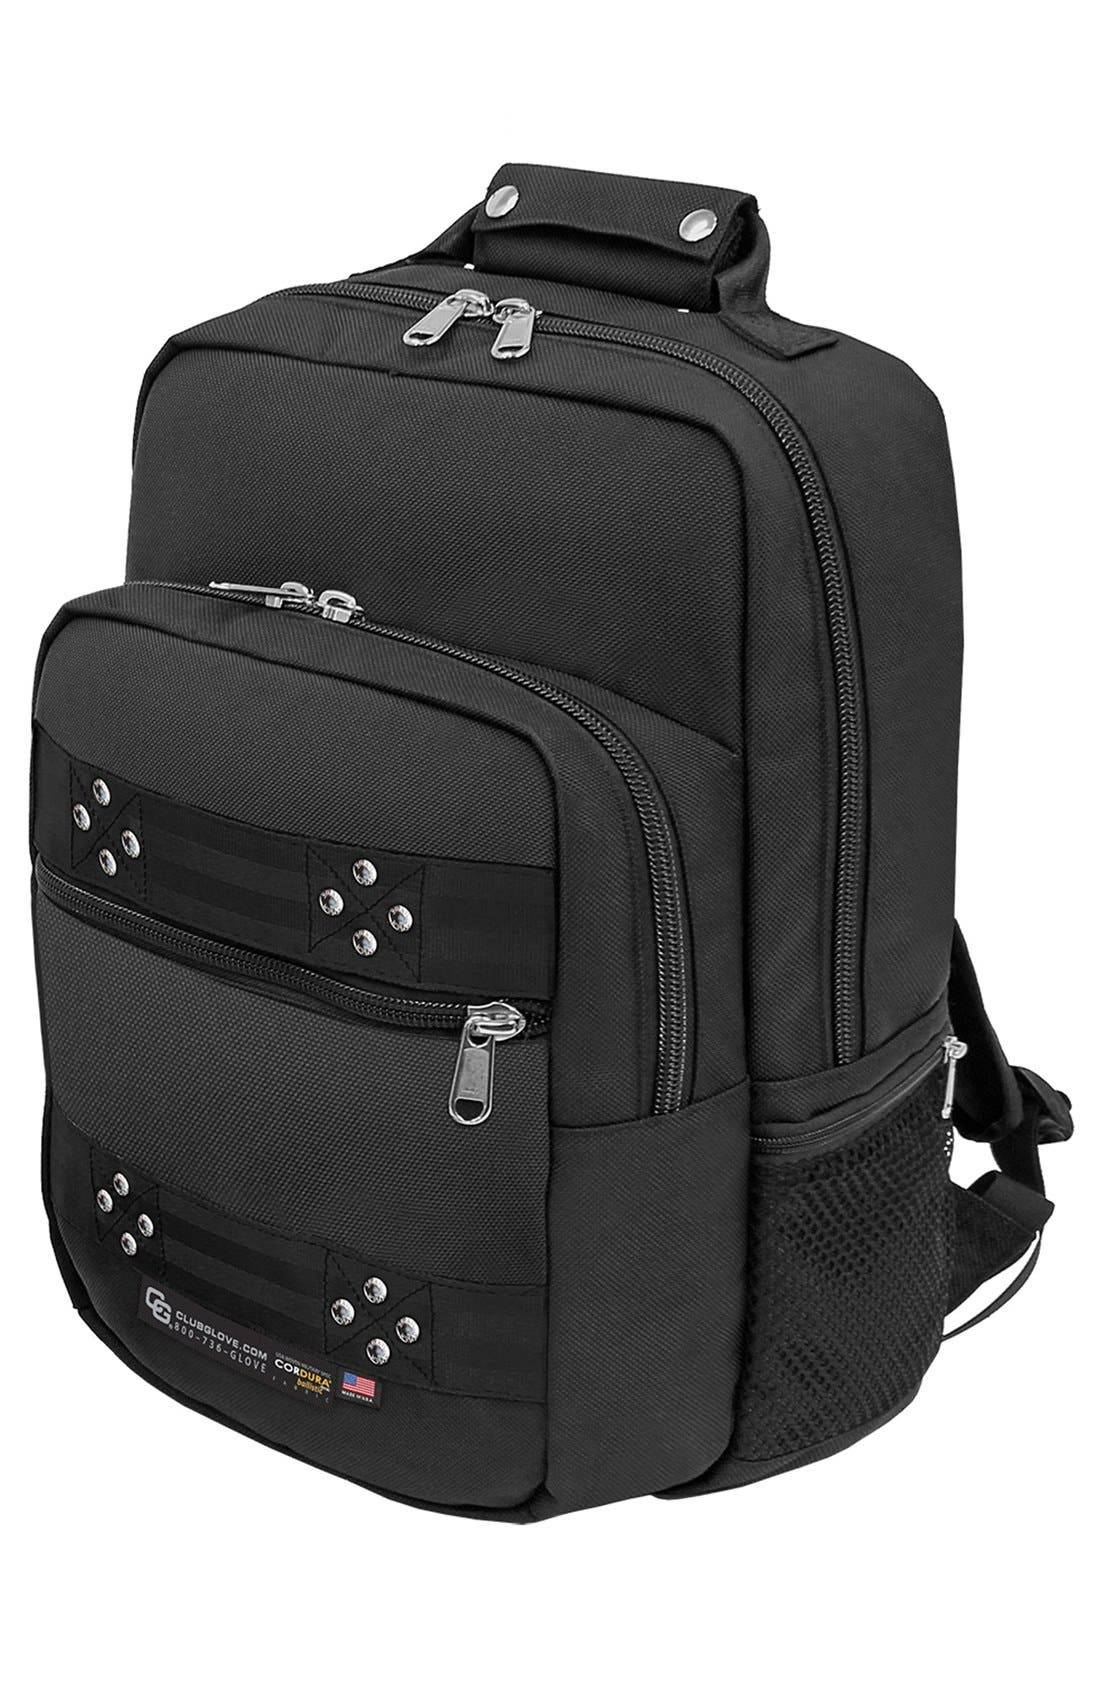 'TRS Ballistic - Executive' Backpack,                             Alternate thumbnail 2, color,                             BLACK/ BLACK